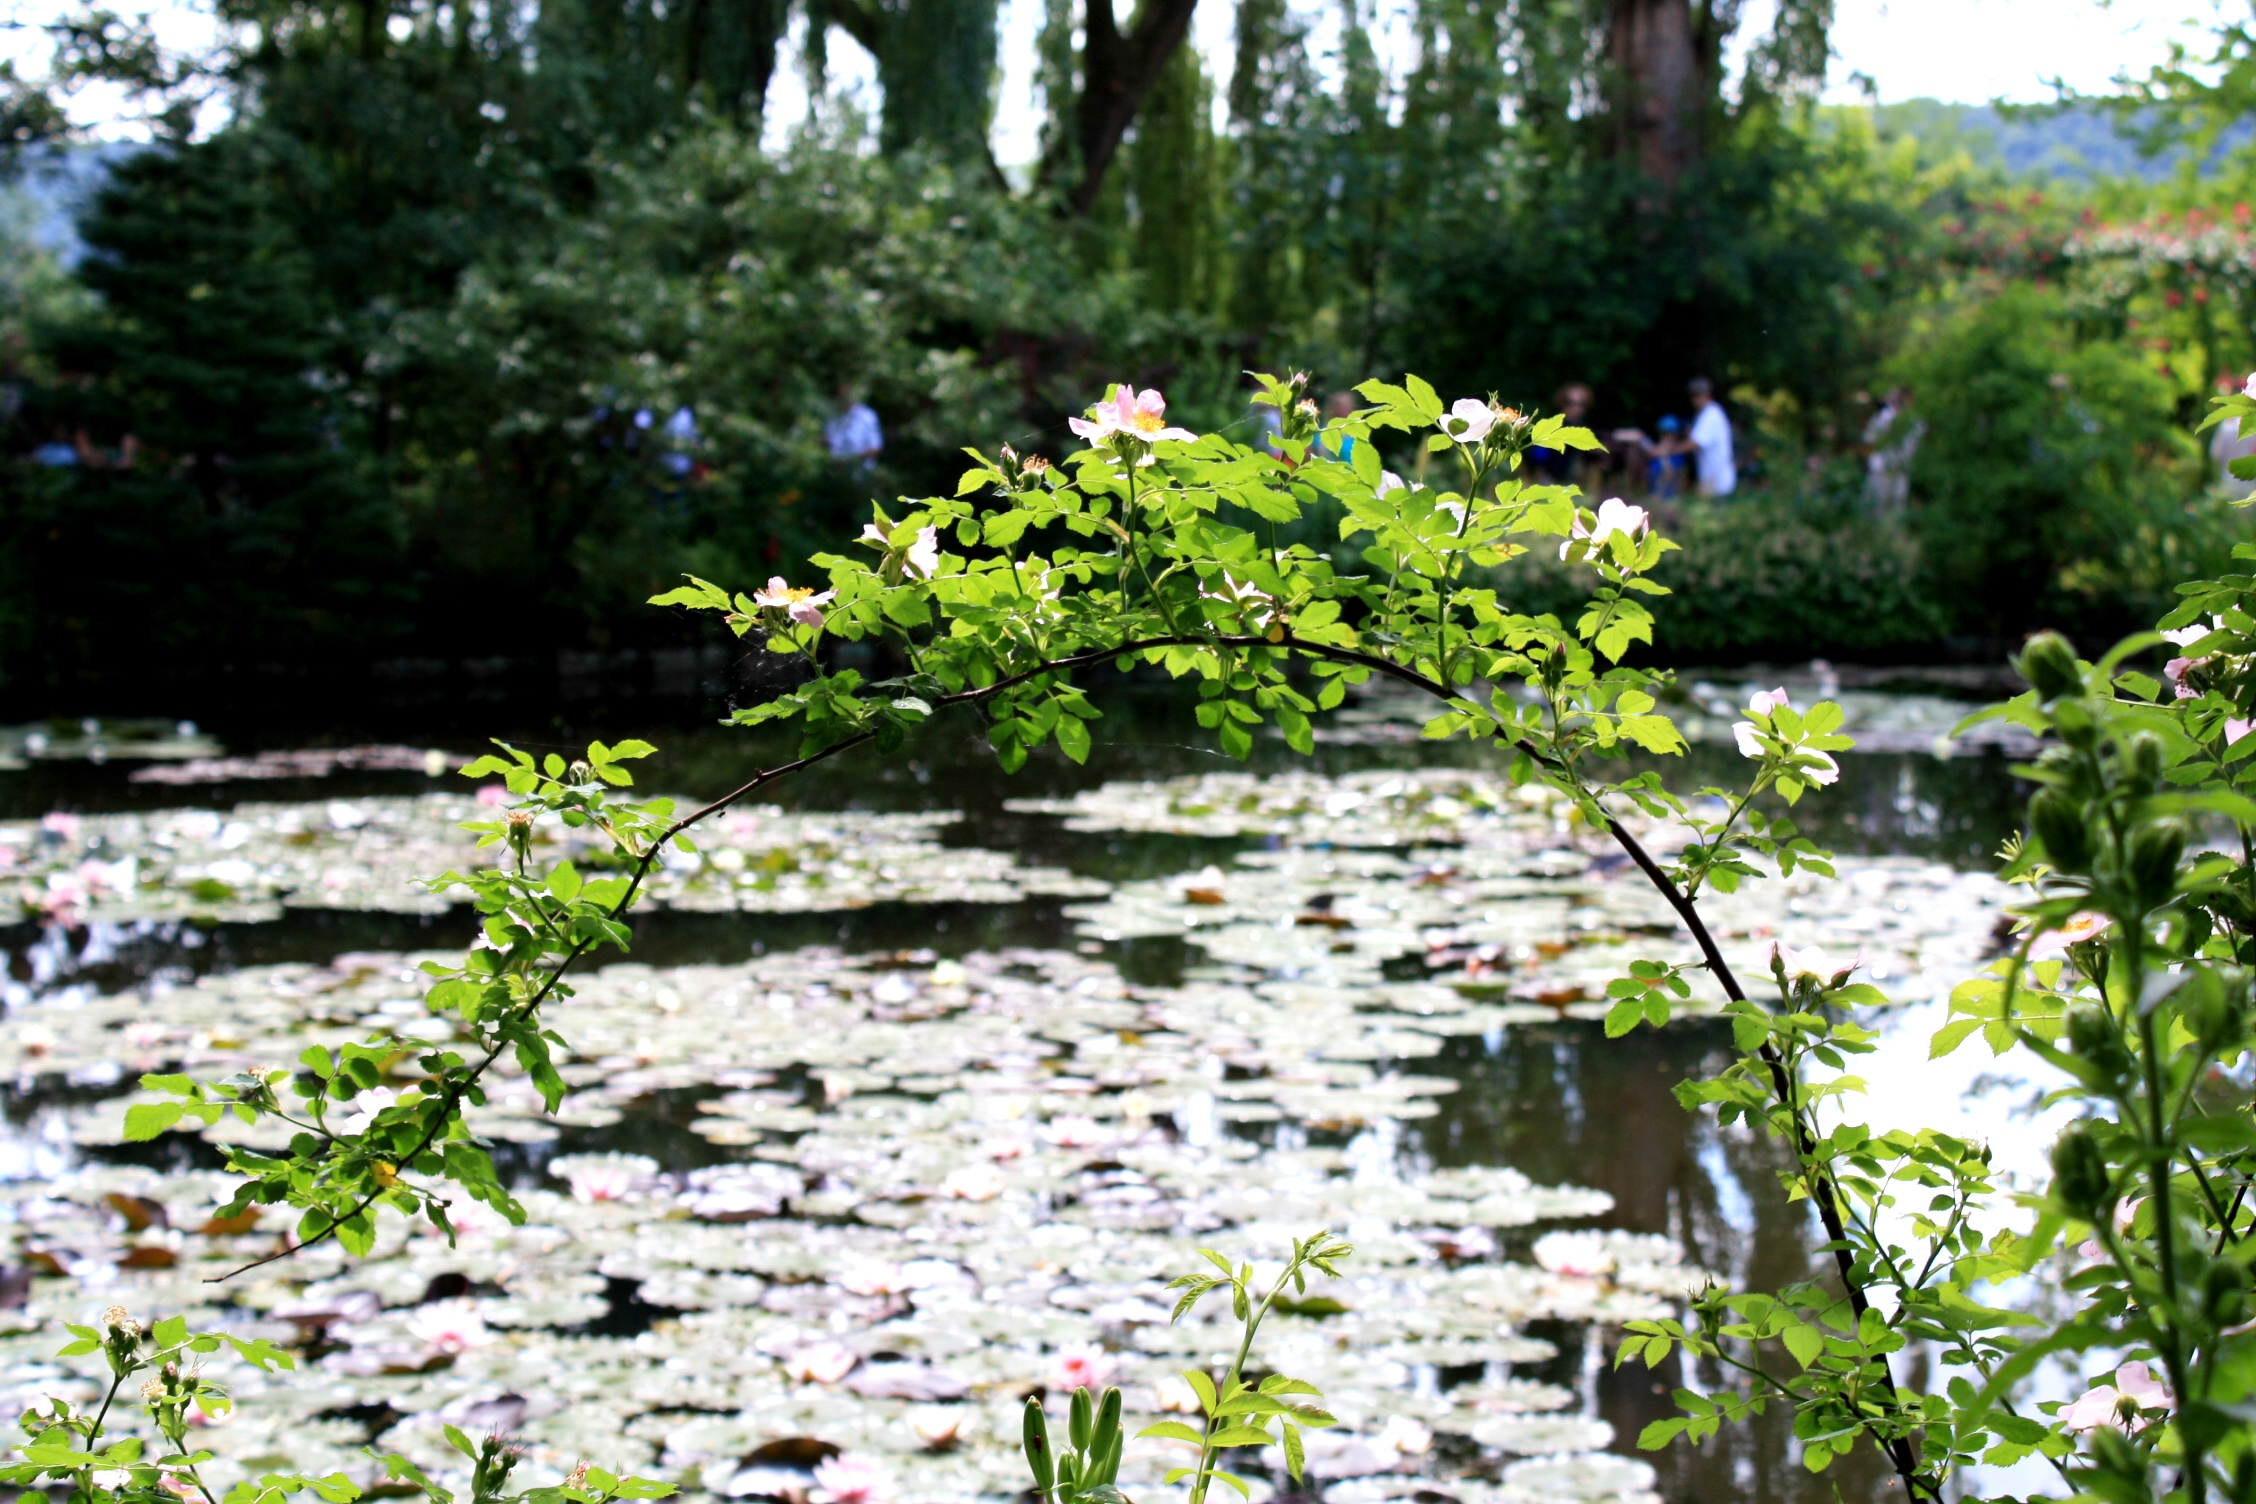 giverny-monet-garden-france-travelgrip- (40)